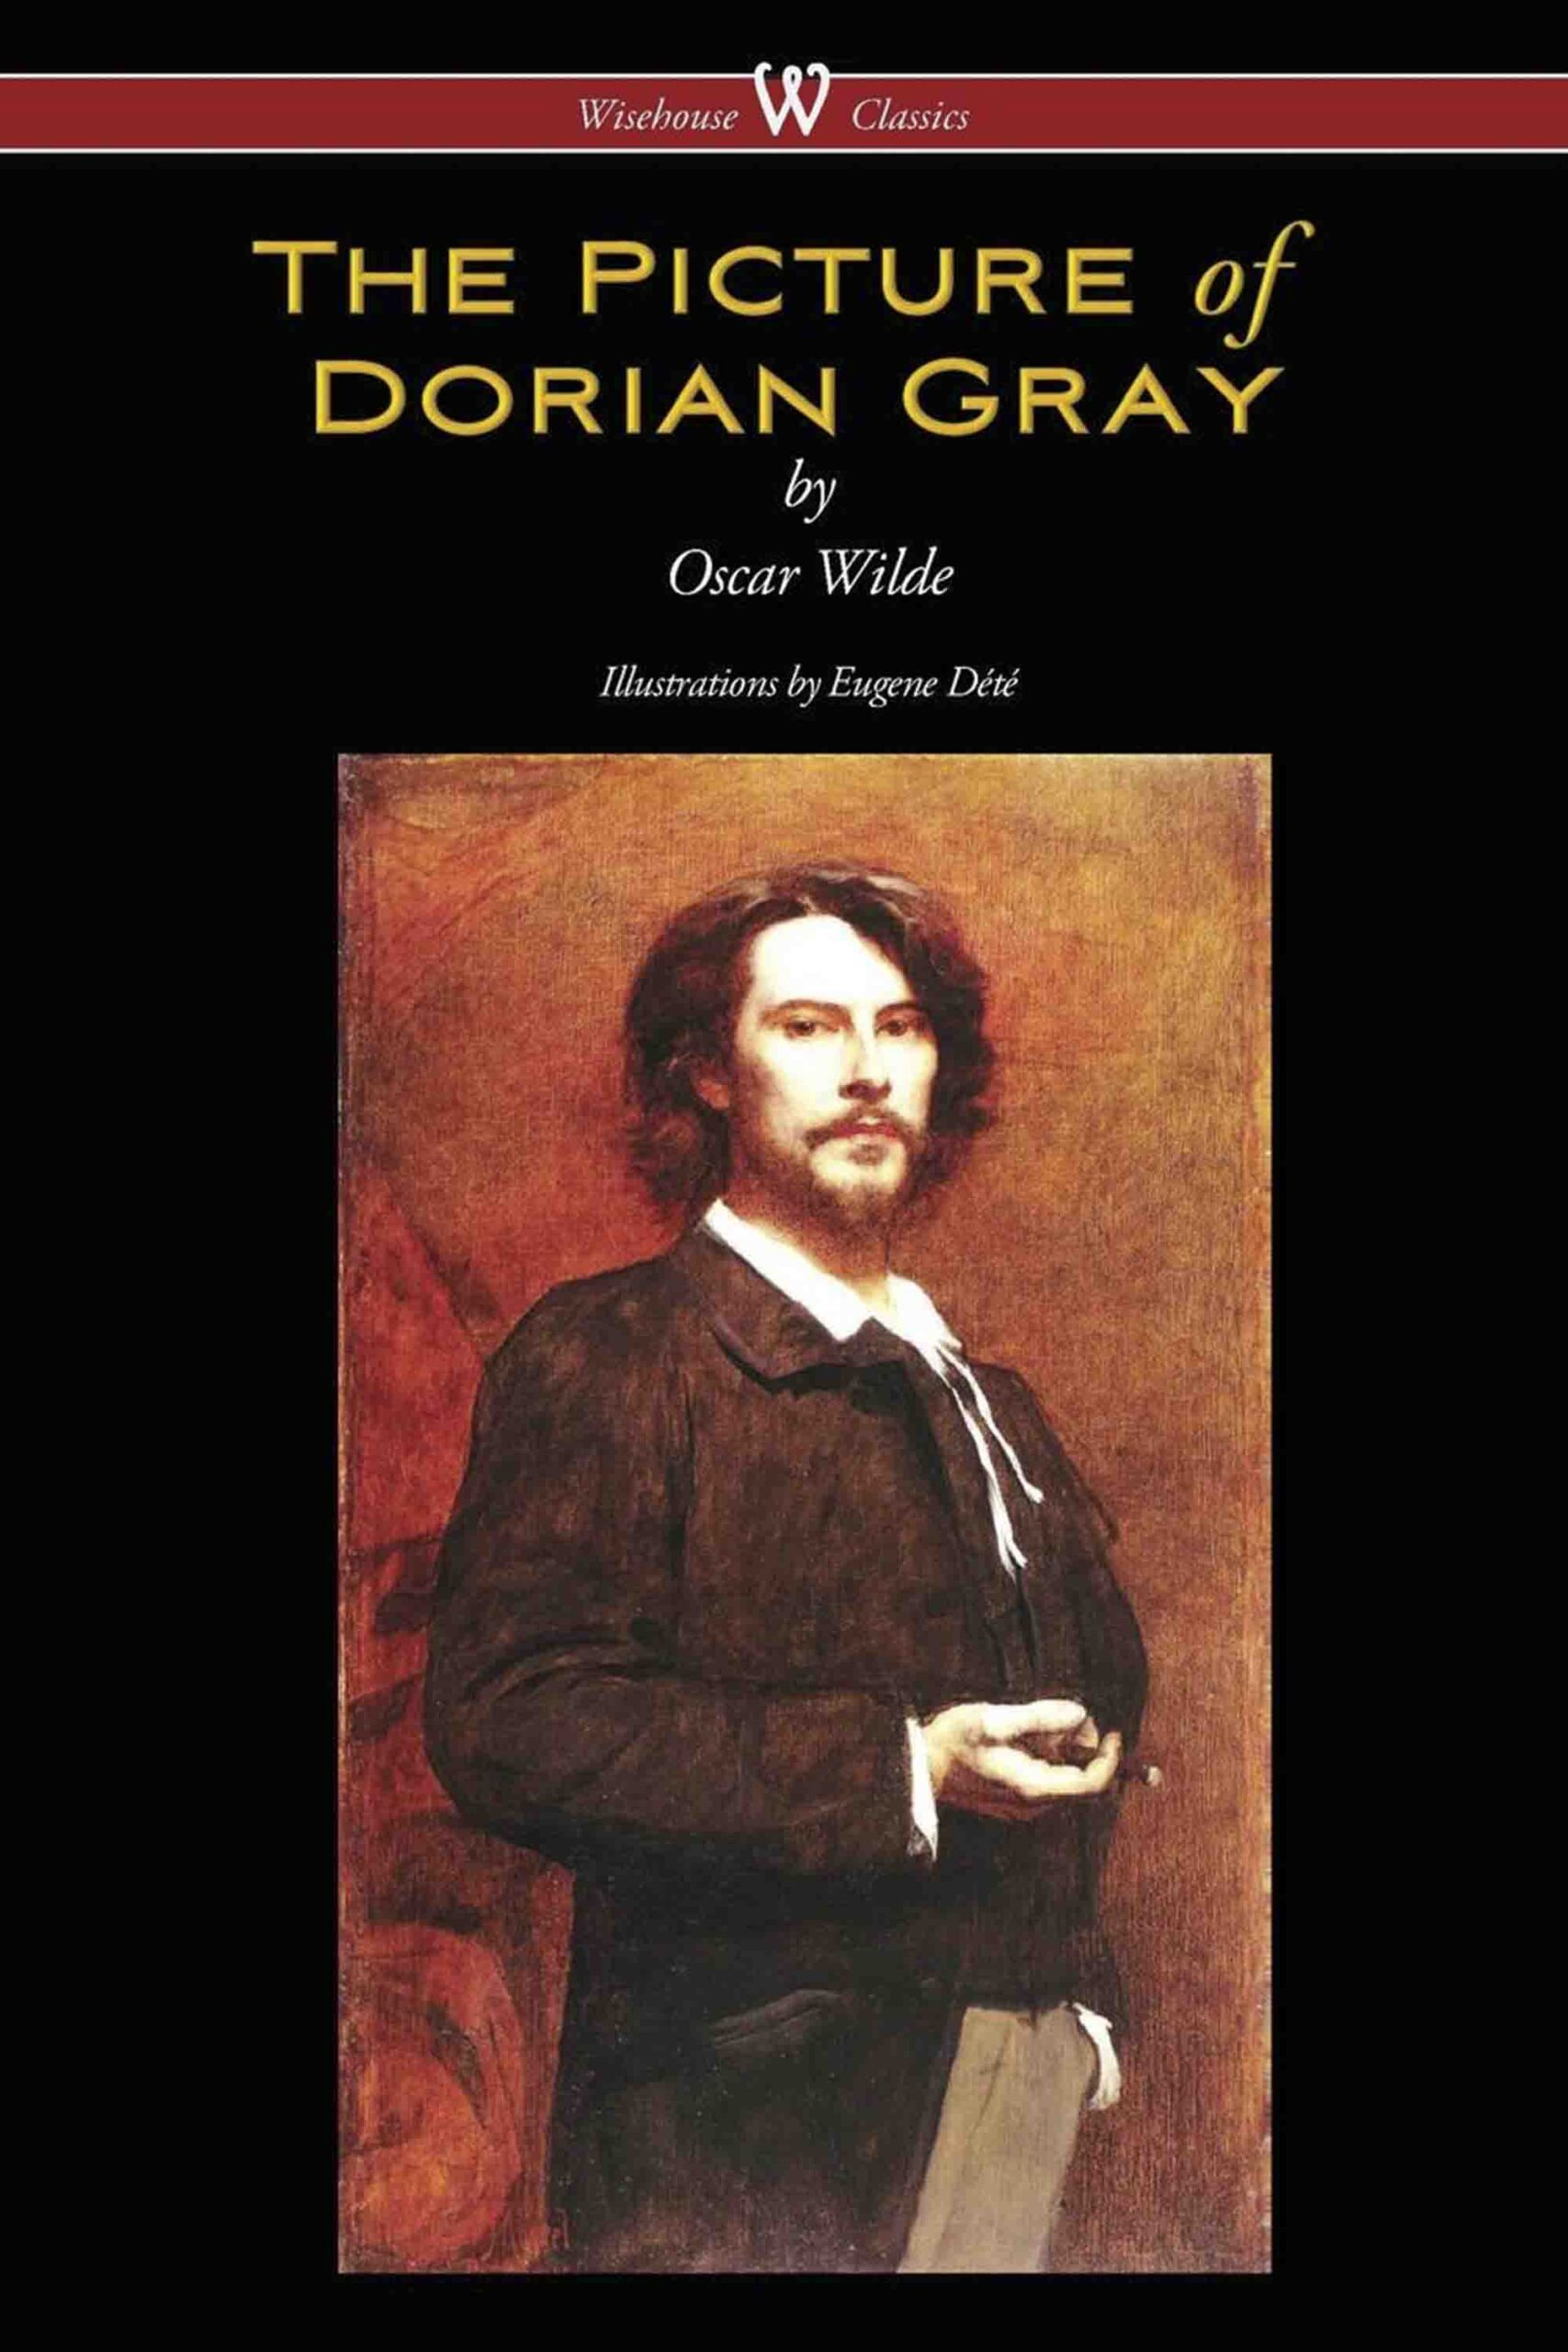 The Picture of Dorian Gray (Wisehouse Classics – with original illustrations by Eugene Dété)